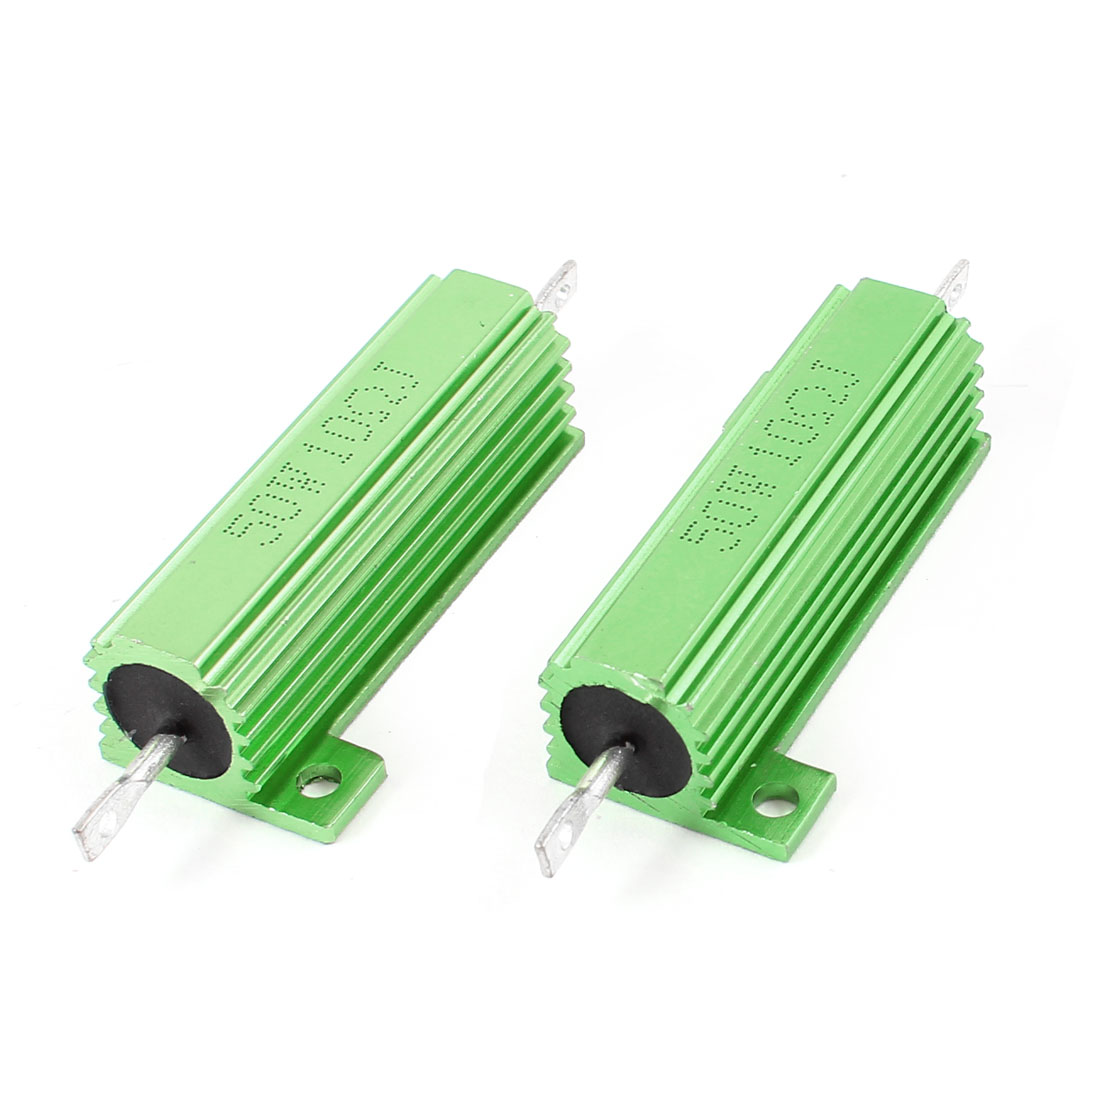 2pcs Electrical Part 50W 10 Ohm 5% Tolerance Resistance Resistor